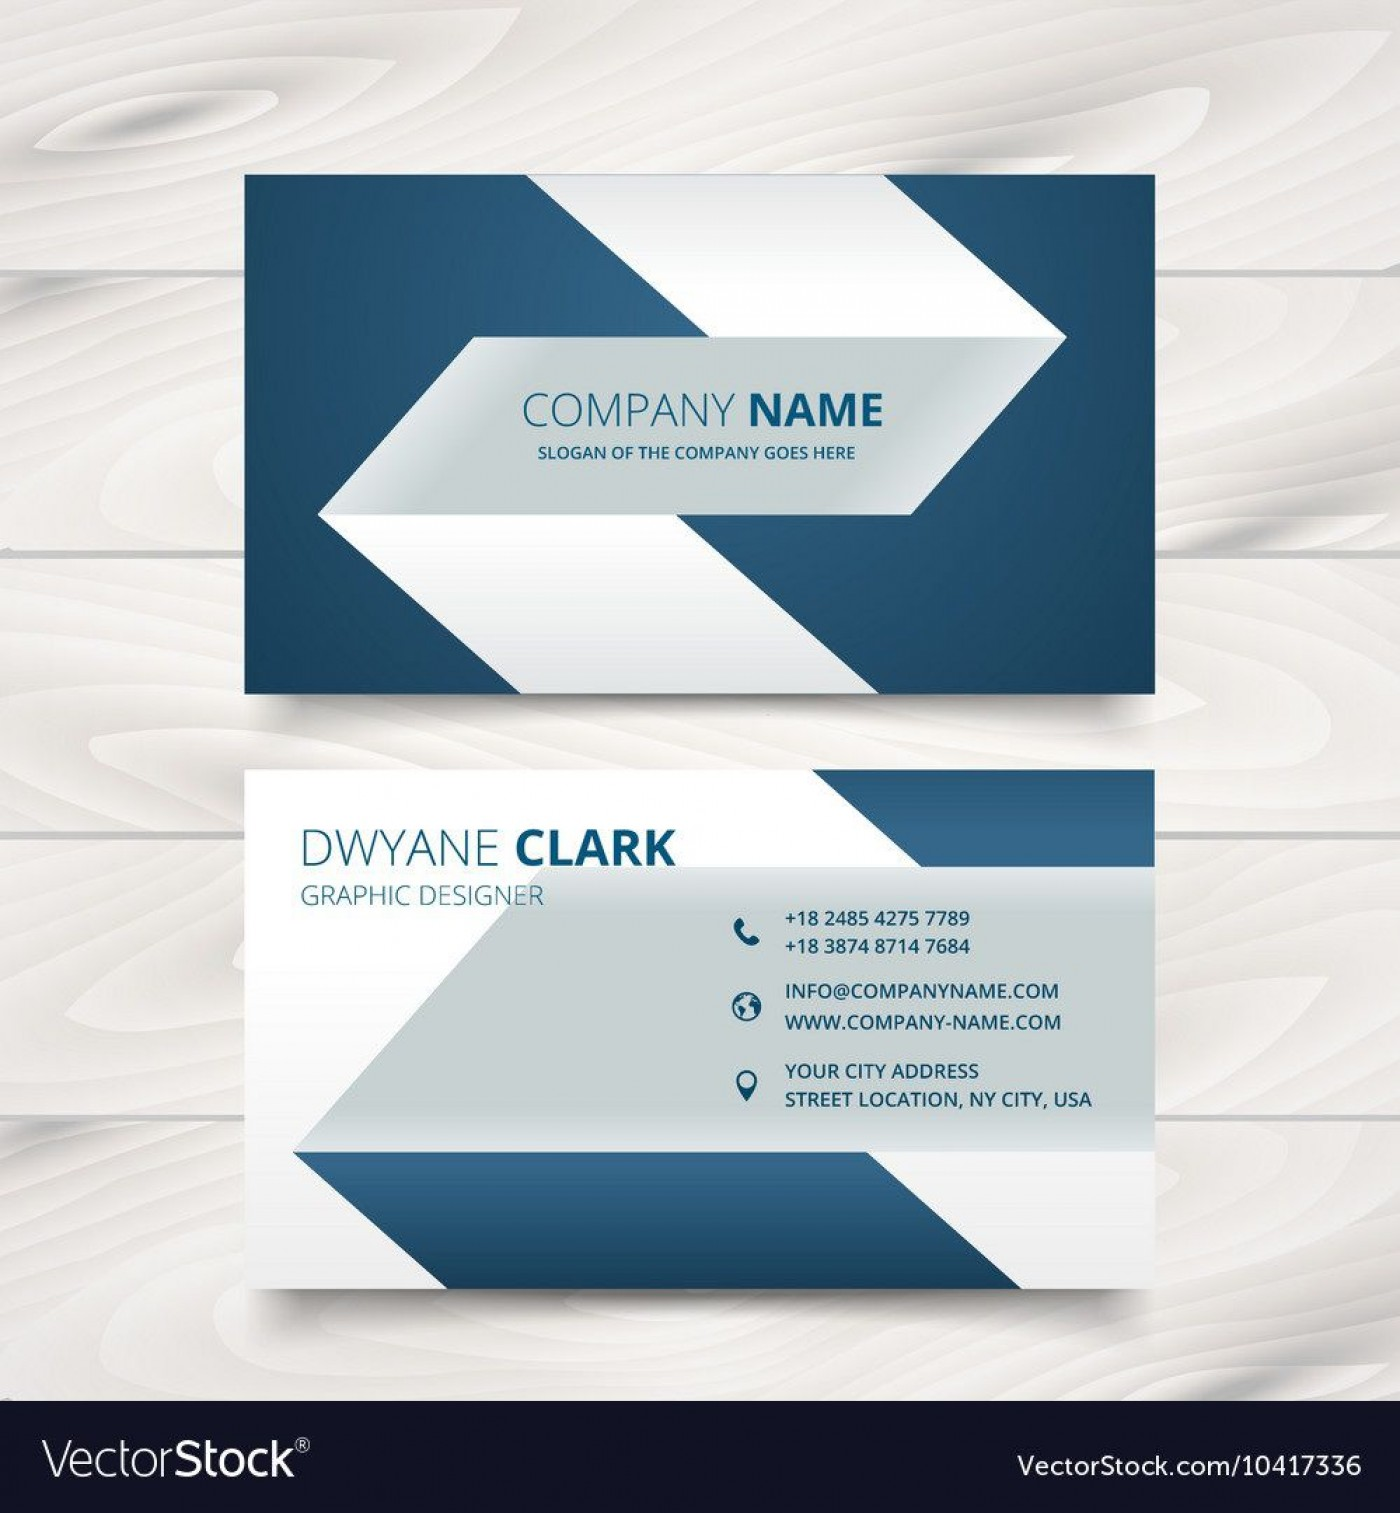 005 Fascinating Simple Visiting Card Design Inspiration  Calling Busines Template Free In Photoshop1400